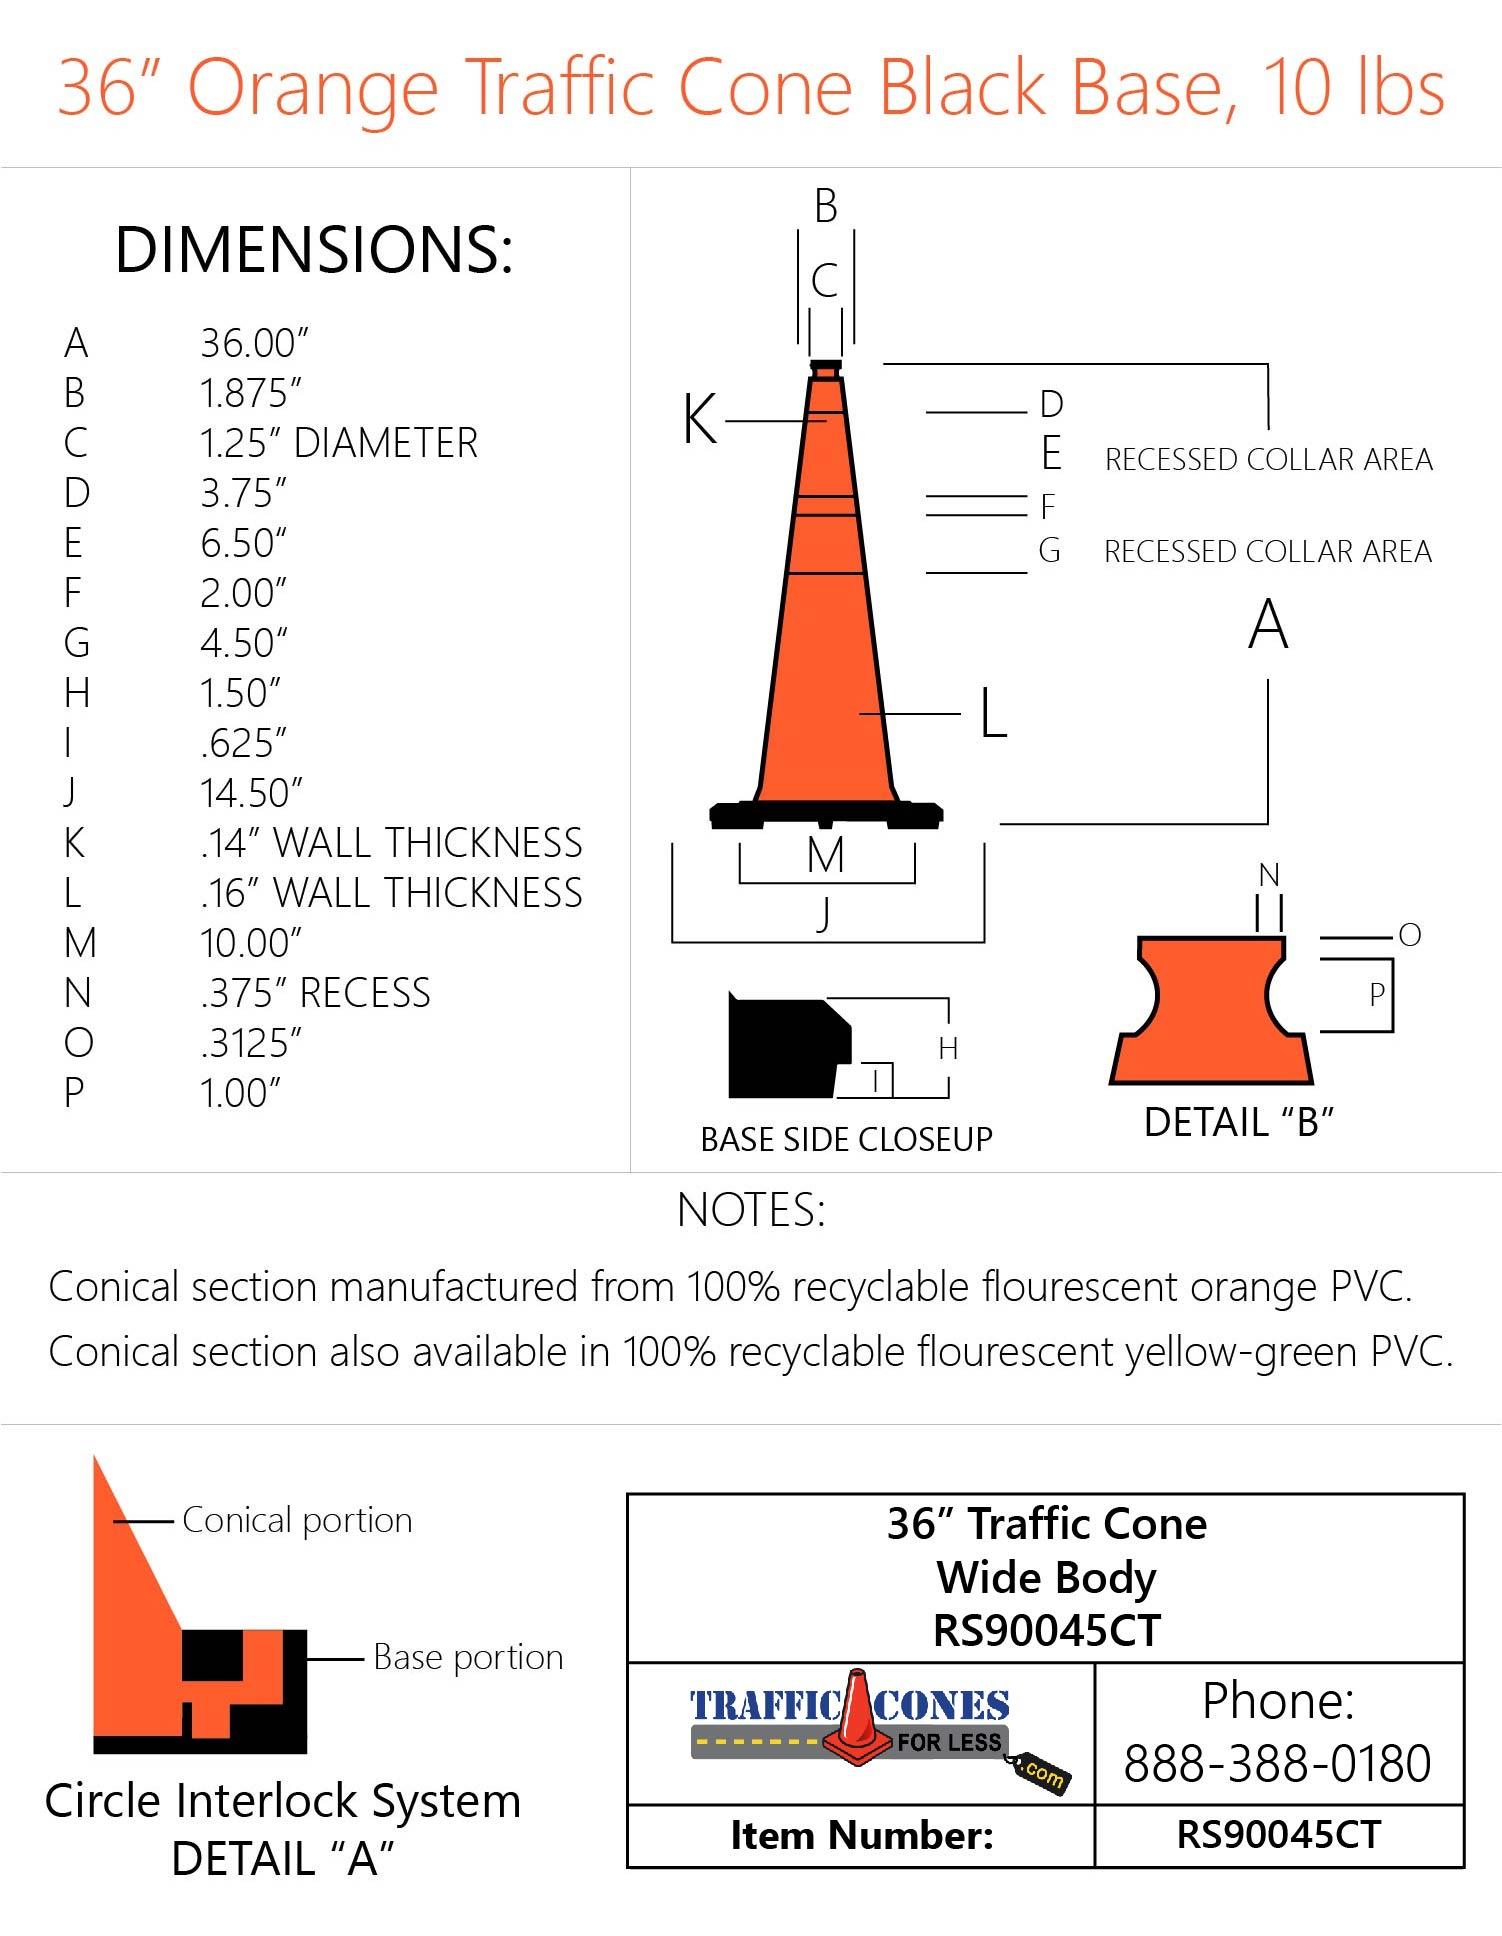 Orange Cone Diagram Trusted Wiring Diagrams Cinder Volcano 36 10 Lb Traffic Cones For Less Drawing